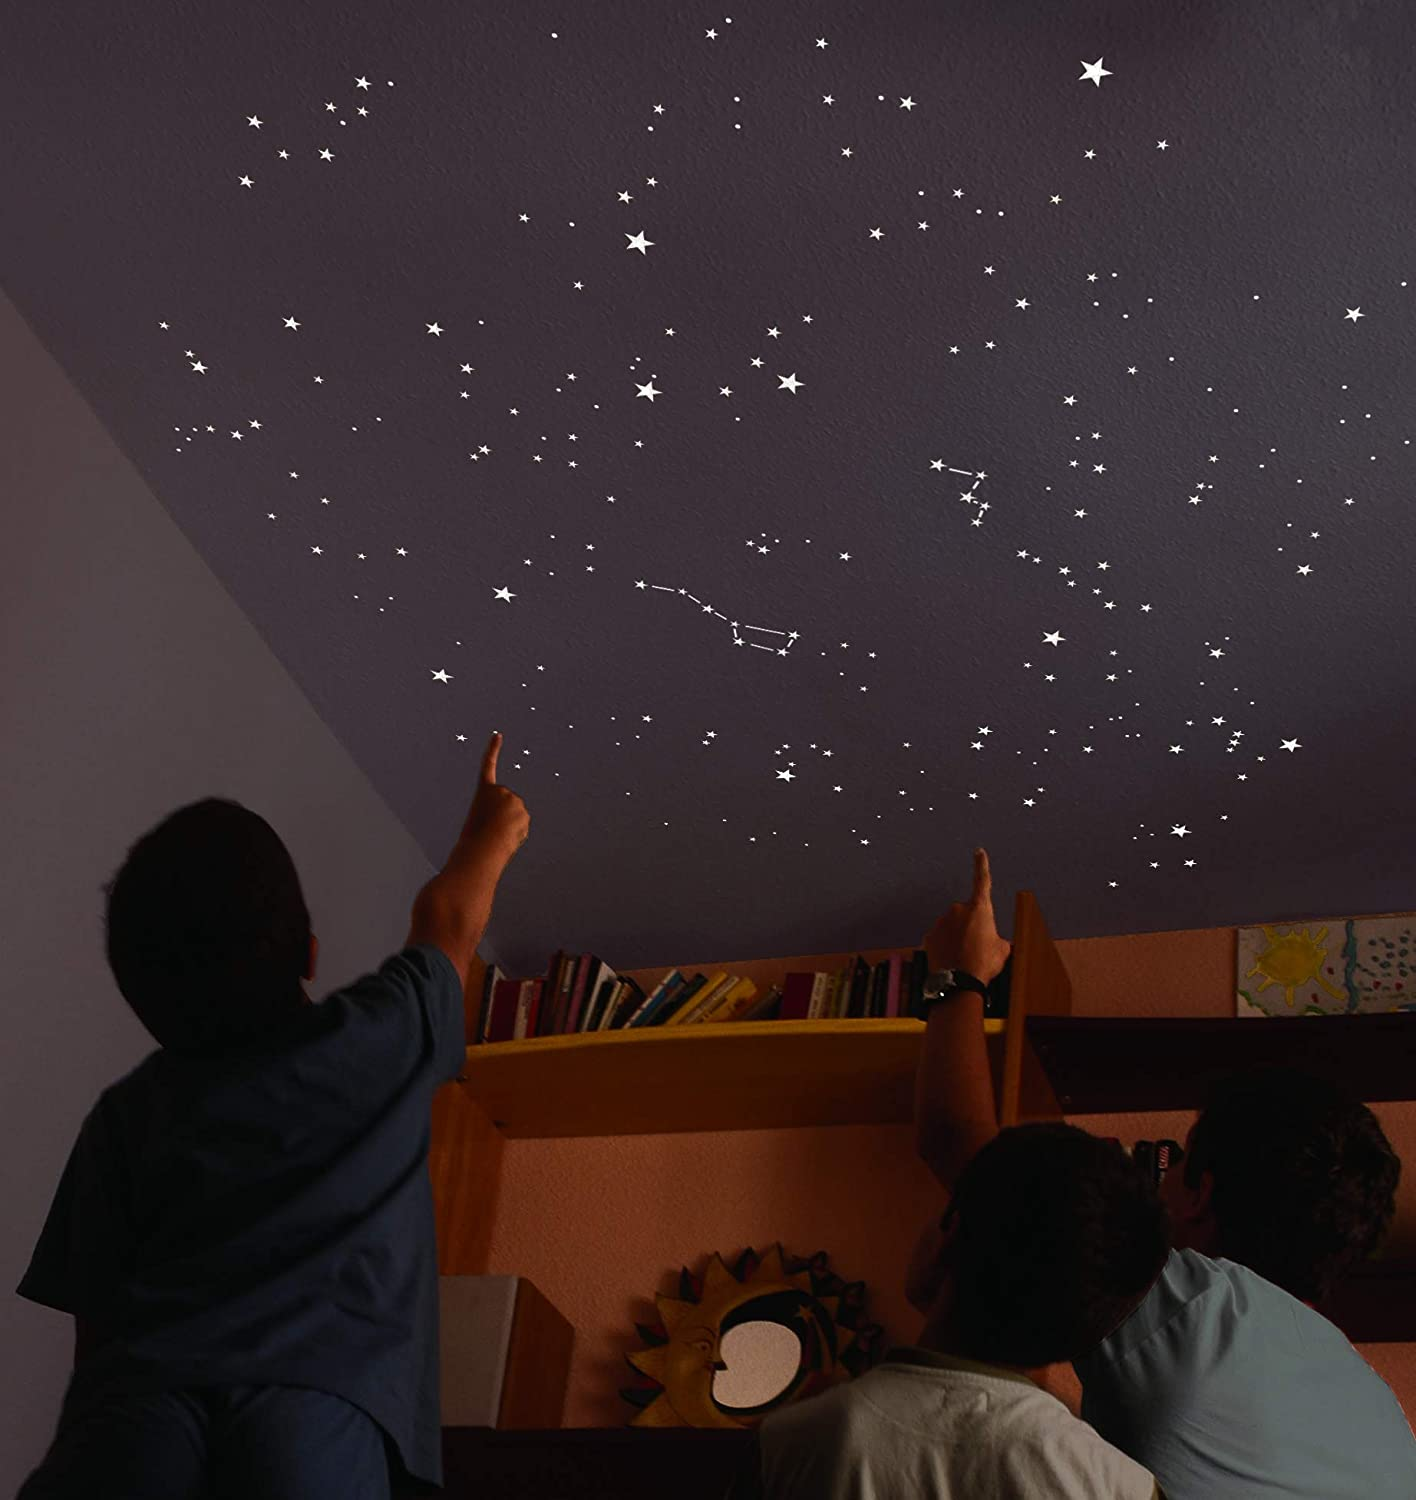 Amazon.com: Kit of 270 fluorescent STARS + STENCIL of 2 m². EXACT REPRODUCTION OF THE SKY +2 MAPs with indications. Astronomy on ceiling or wall.